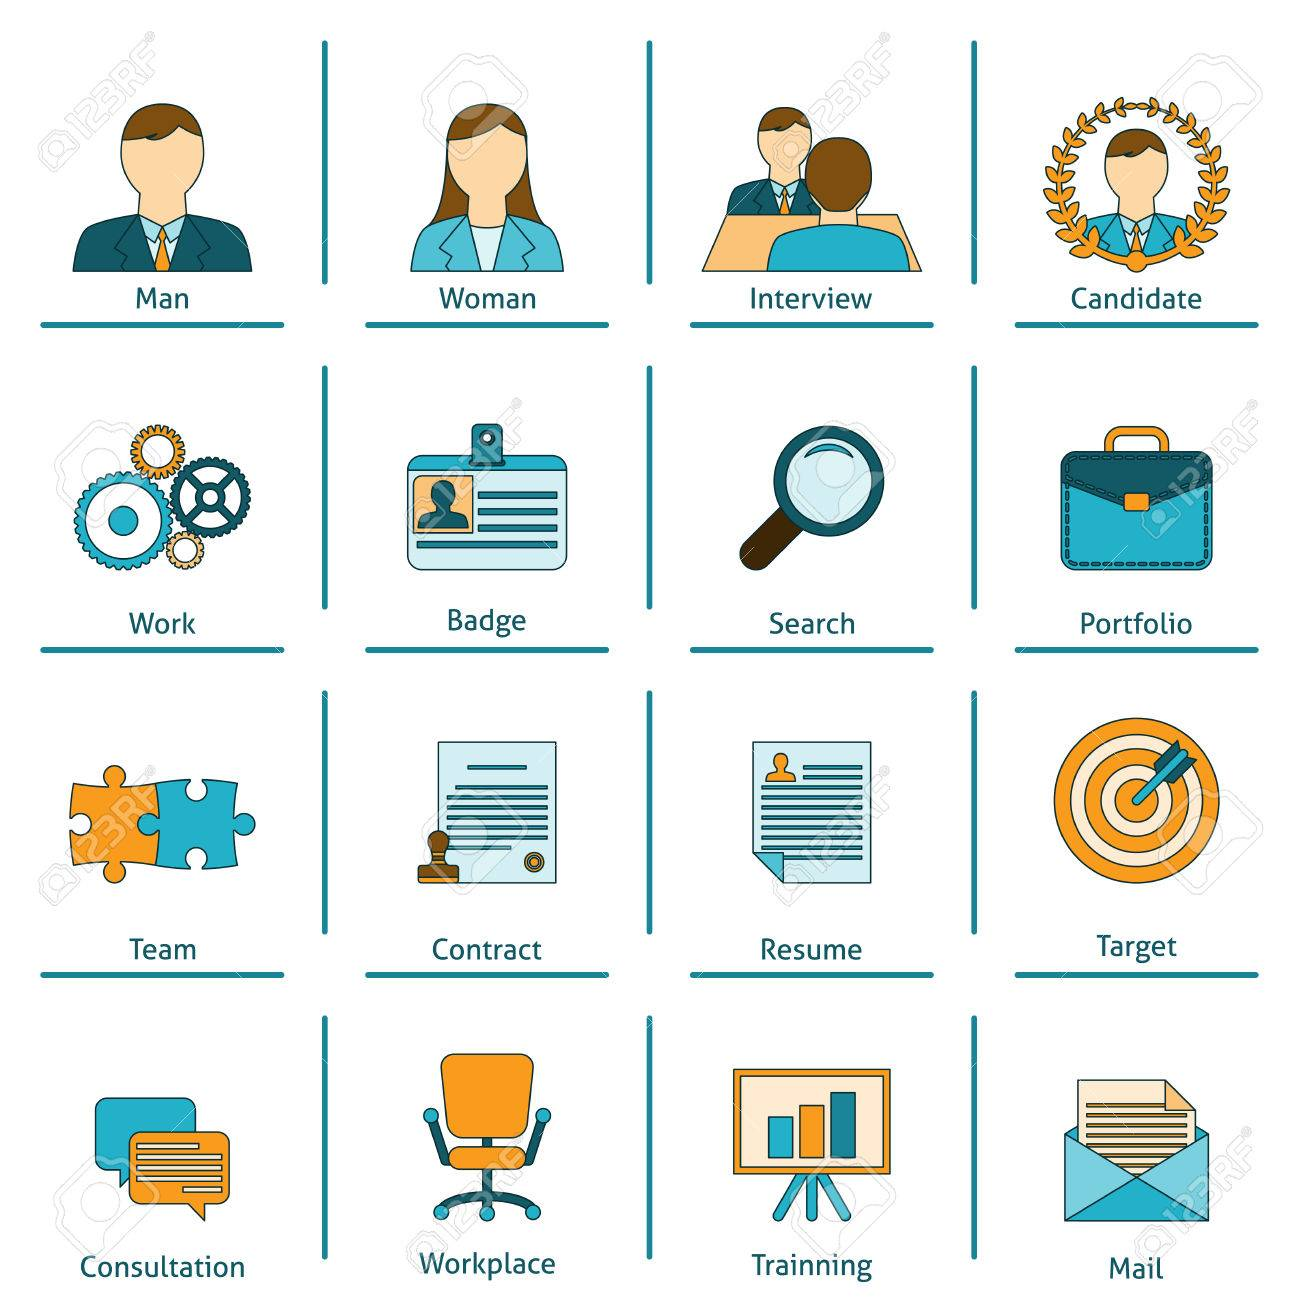 human resources personnel recruitment training and interview human resources personnel recruitment training and interview strategy flat set icons applicant portfolio isolated vector